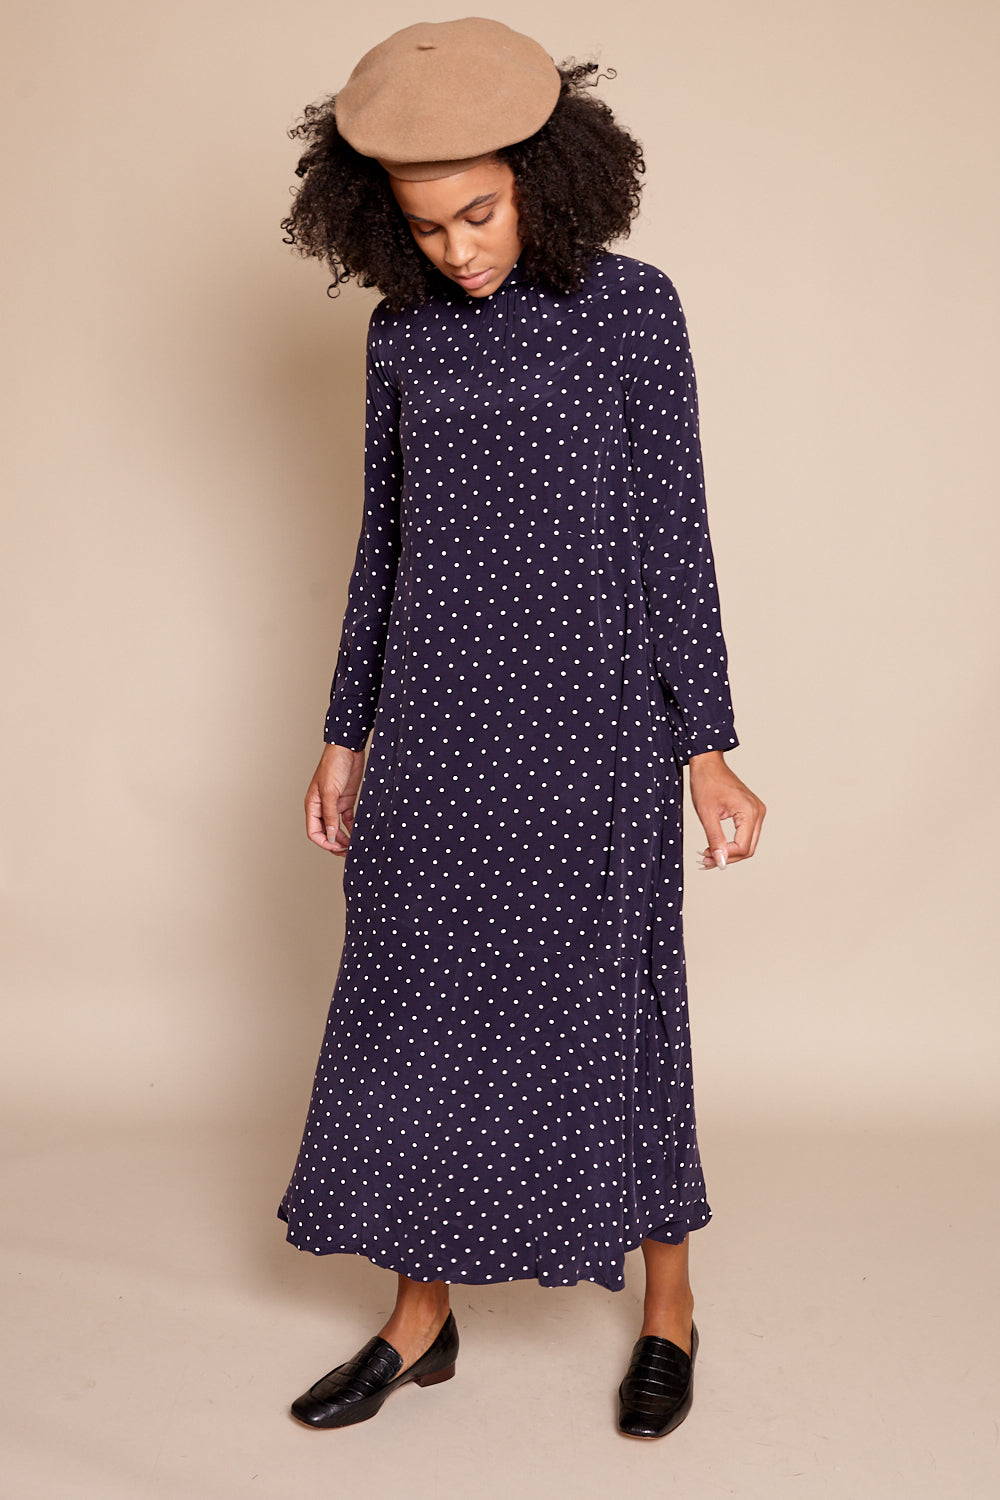 Jordan Dotted Dress in Dotted